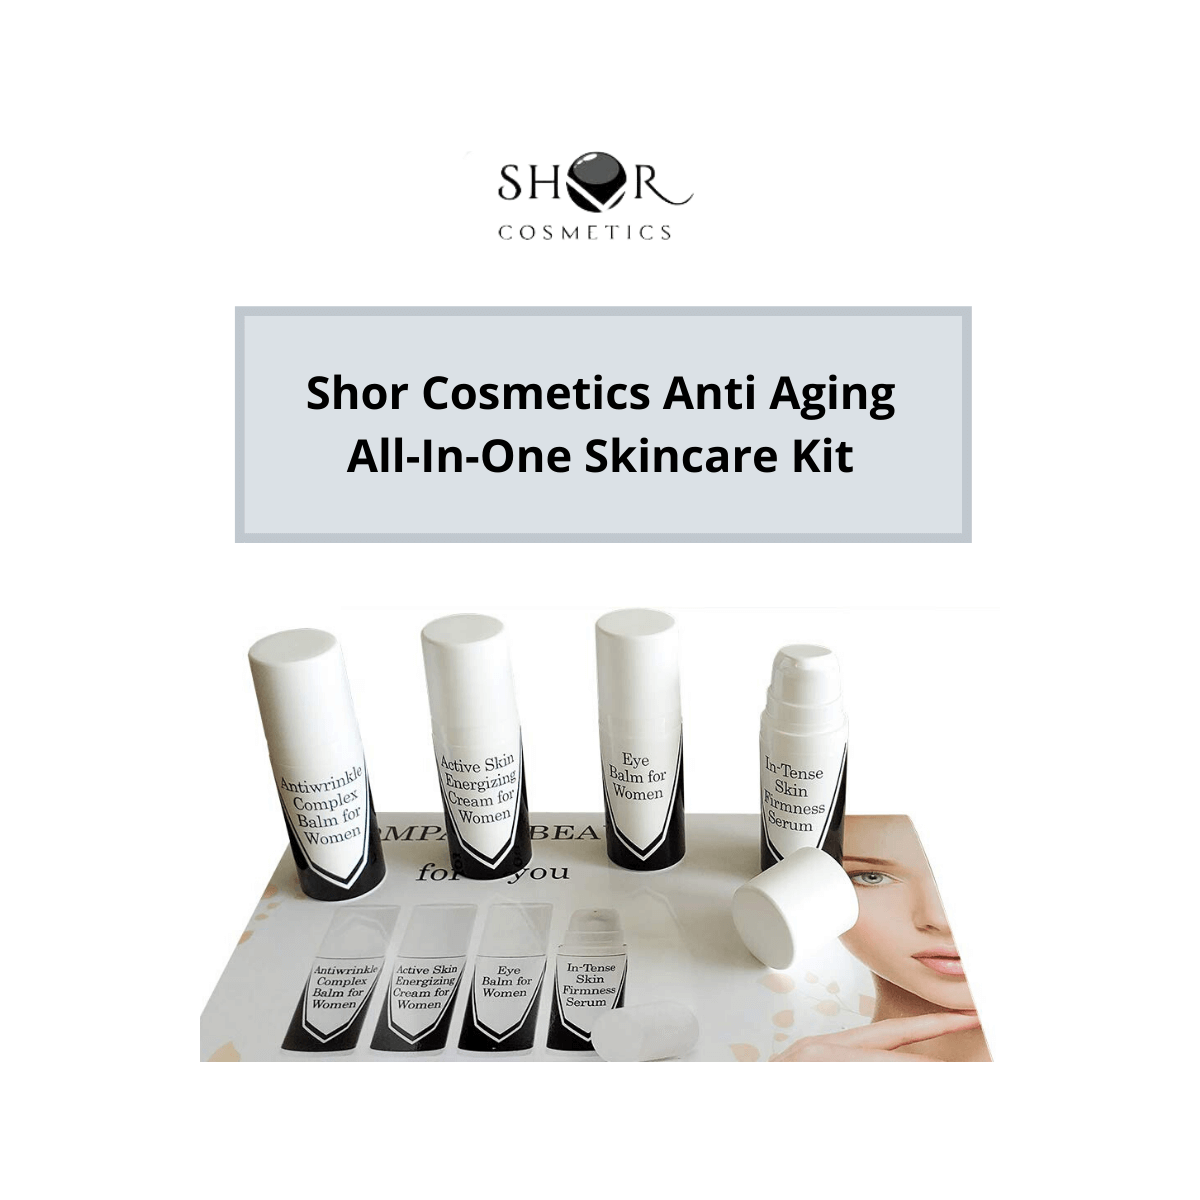 Shor Cosmetics Anti Aging Skin Care Kit, Pack of 4 (Serum, Eye balm,Wrinkle Balm, Age Rebel Energizing Cream) Renewing Day Protection Set and Radiance Lotion for Glowing Face for Women,10 ml each